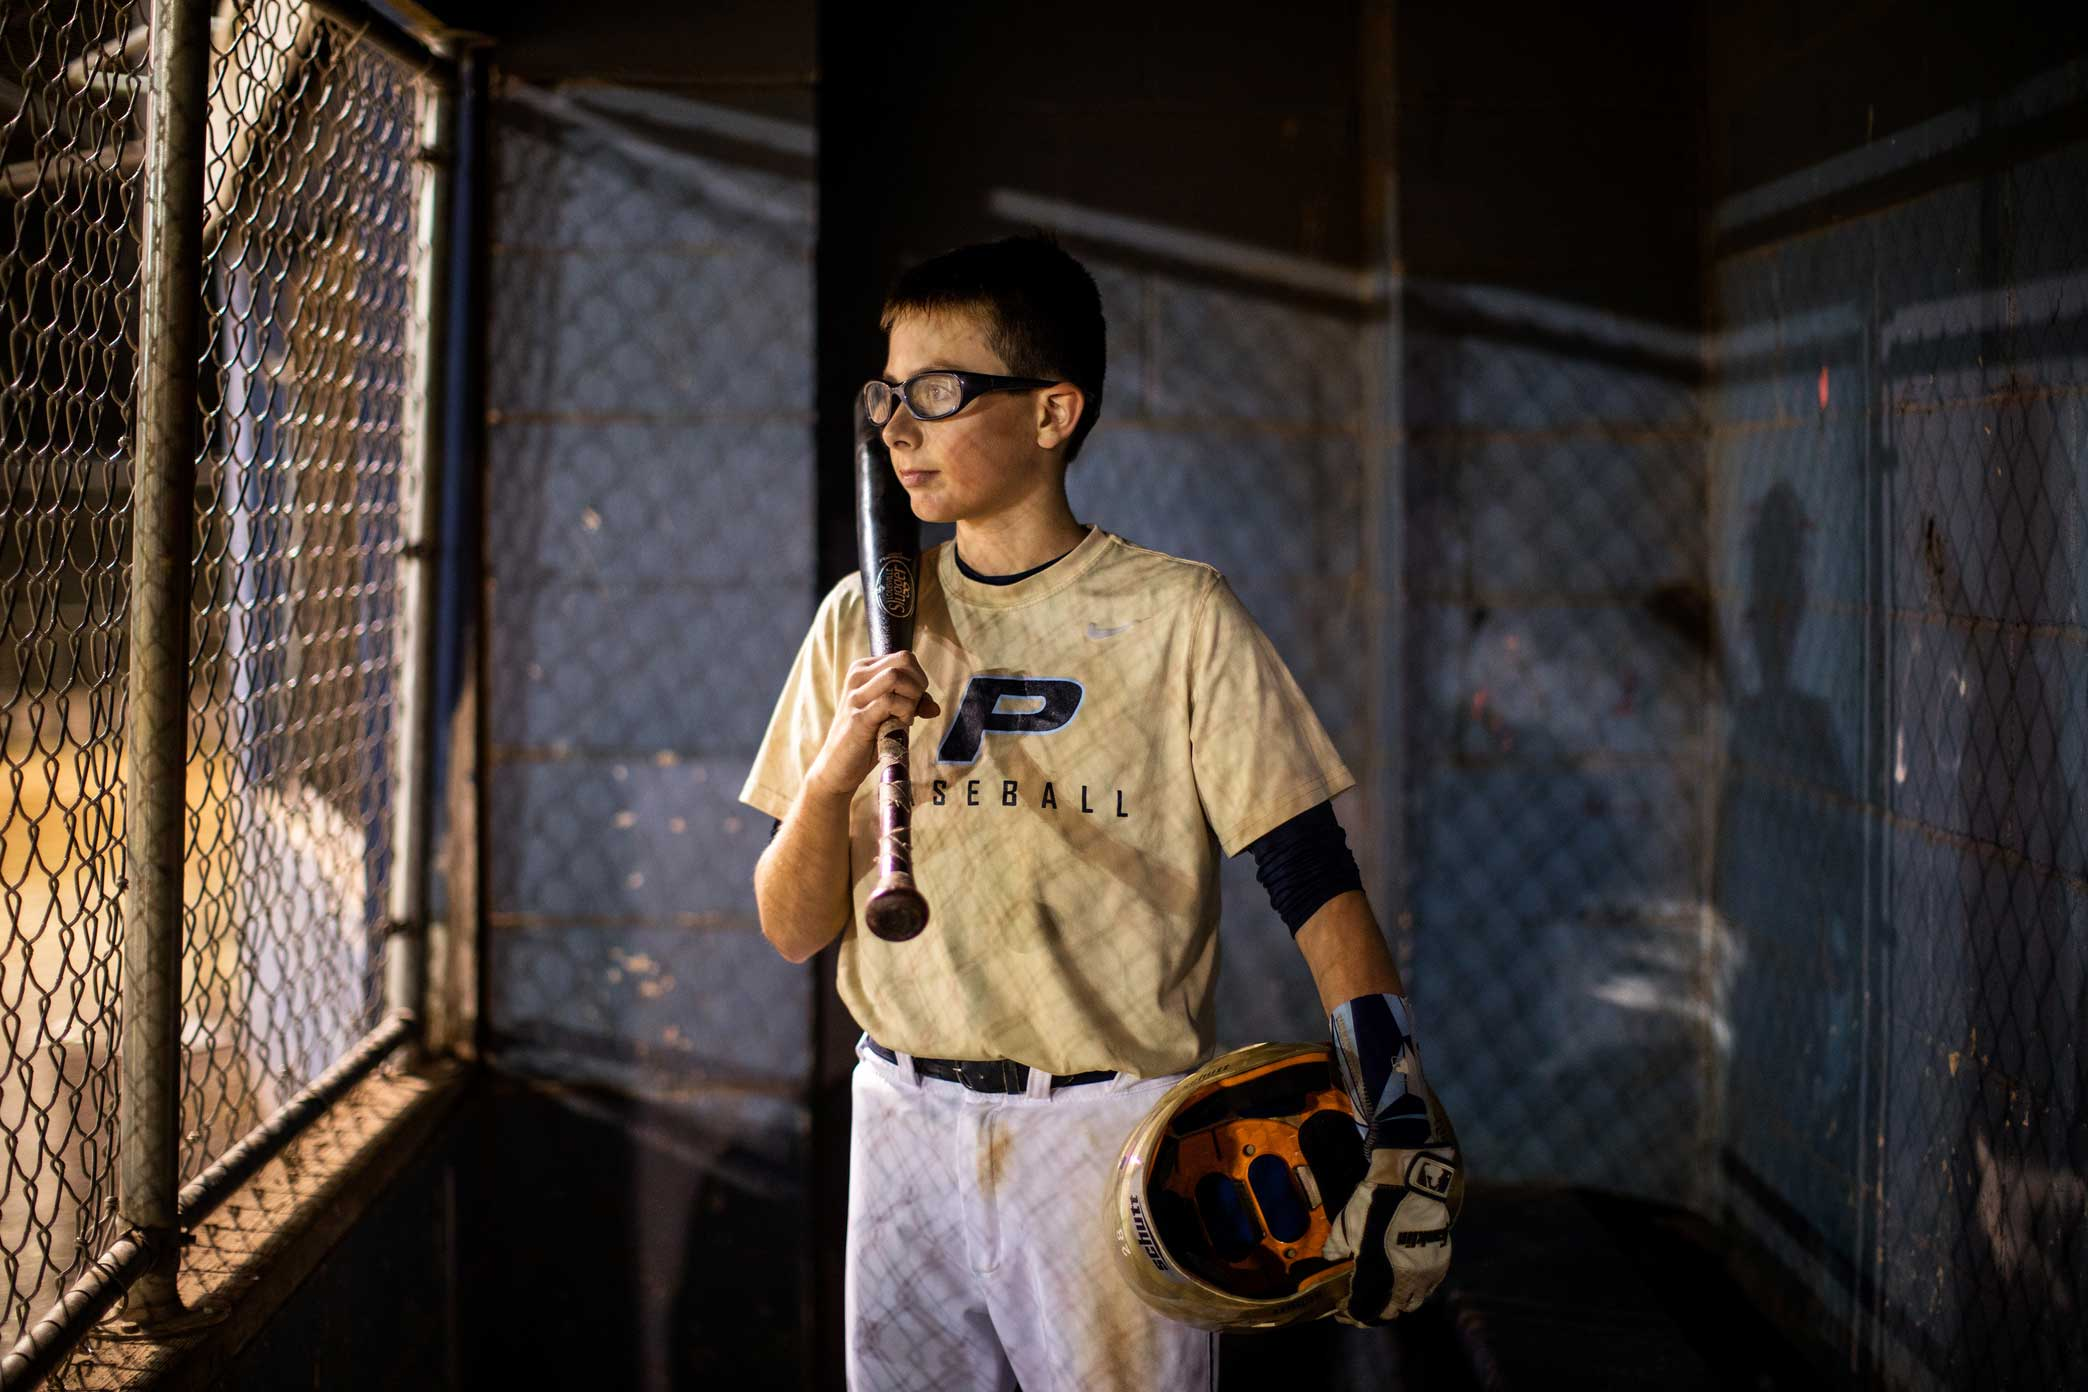 Alex Miller in the dugout at the New Springville Little League complex in Staten Island, New York.